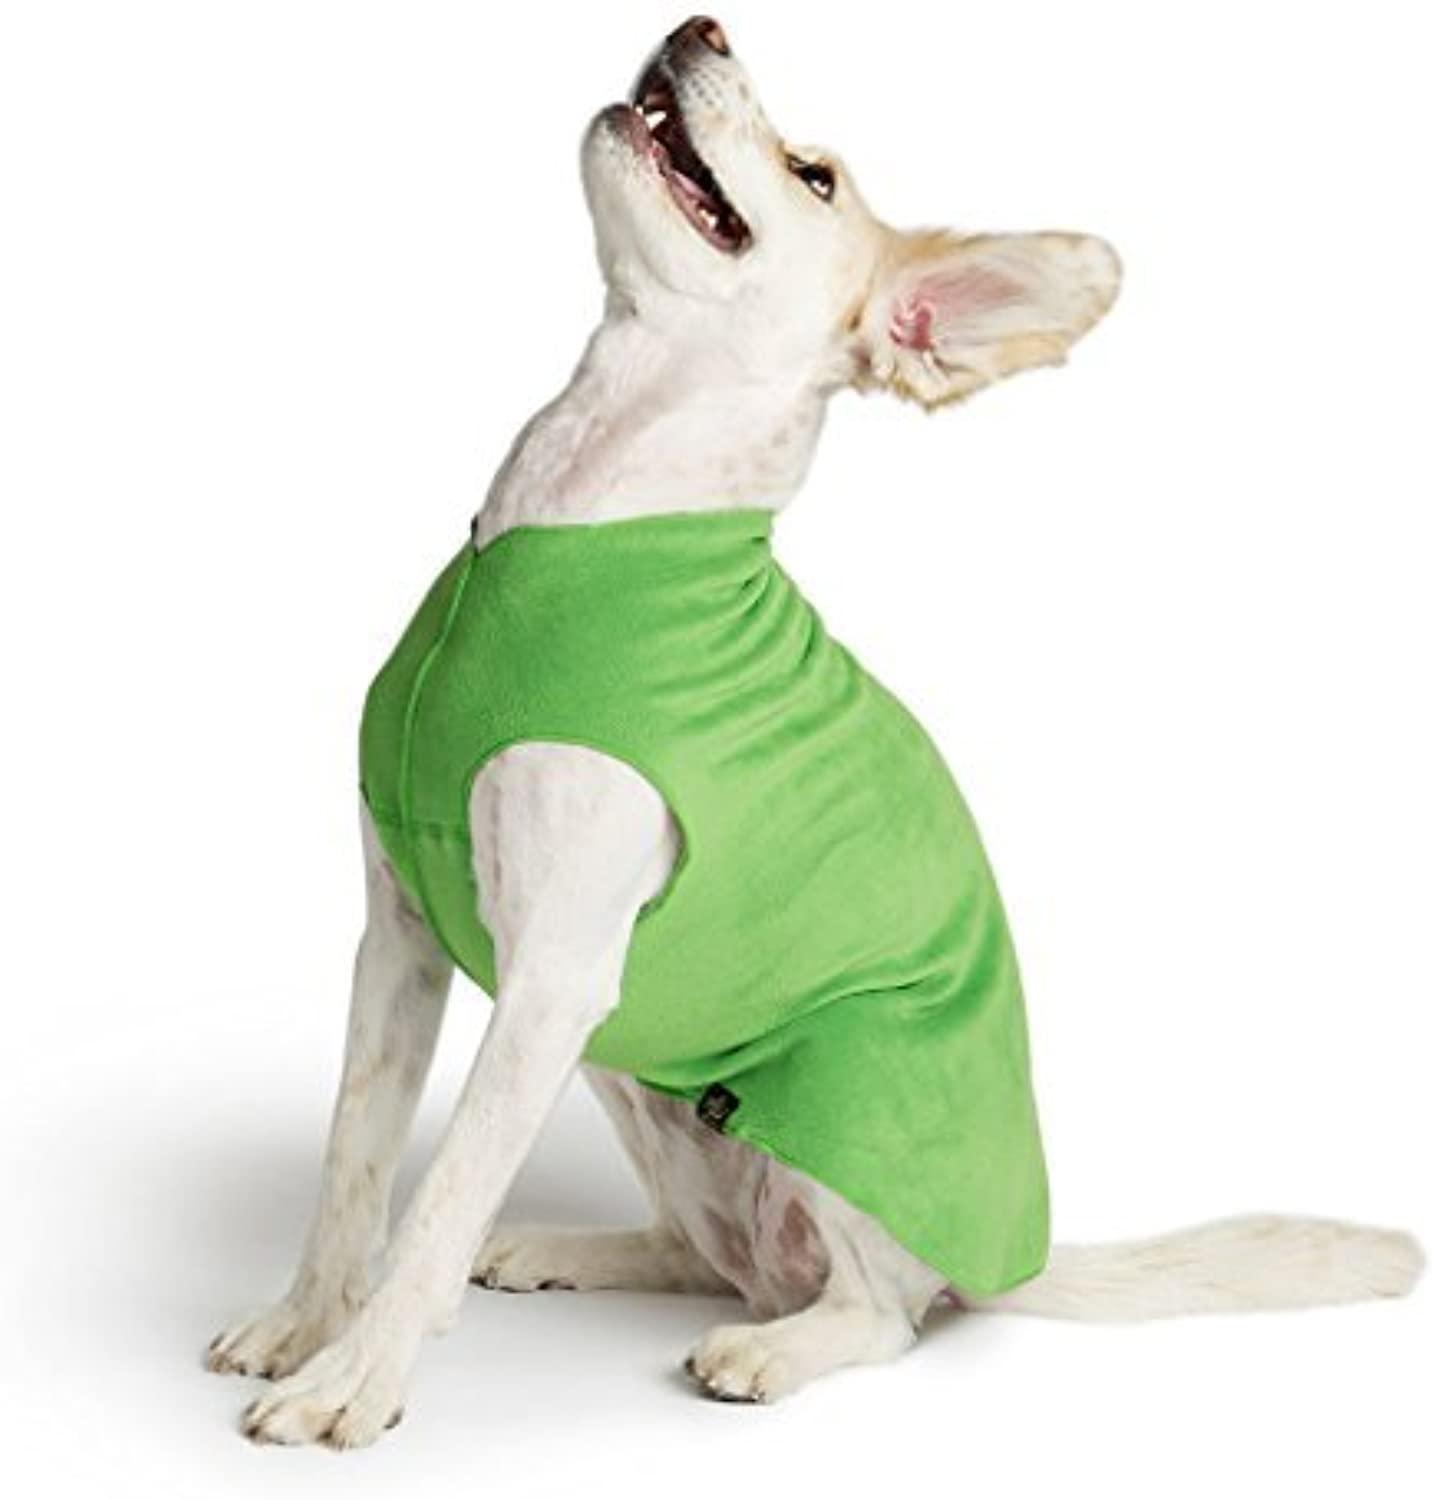 gold Paw Stretch Fleece Dog Coat  Grass Green Size 16 by gold Paw Series